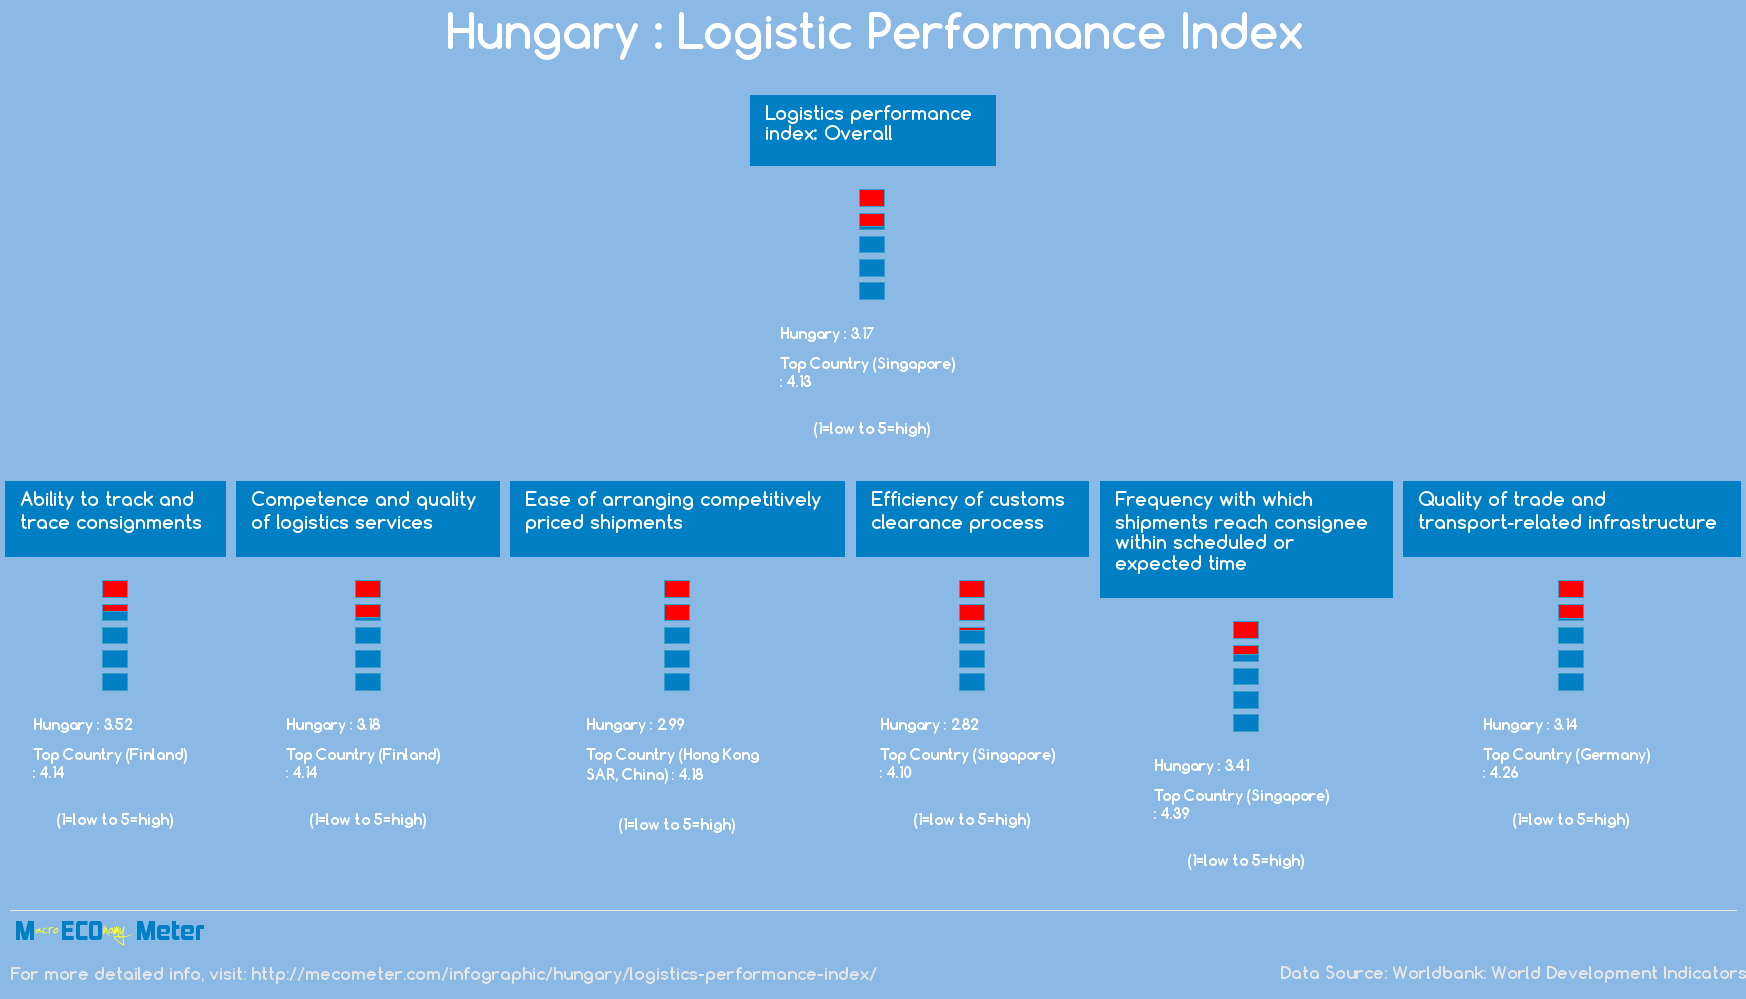 Hungary : Logistic Performance Index